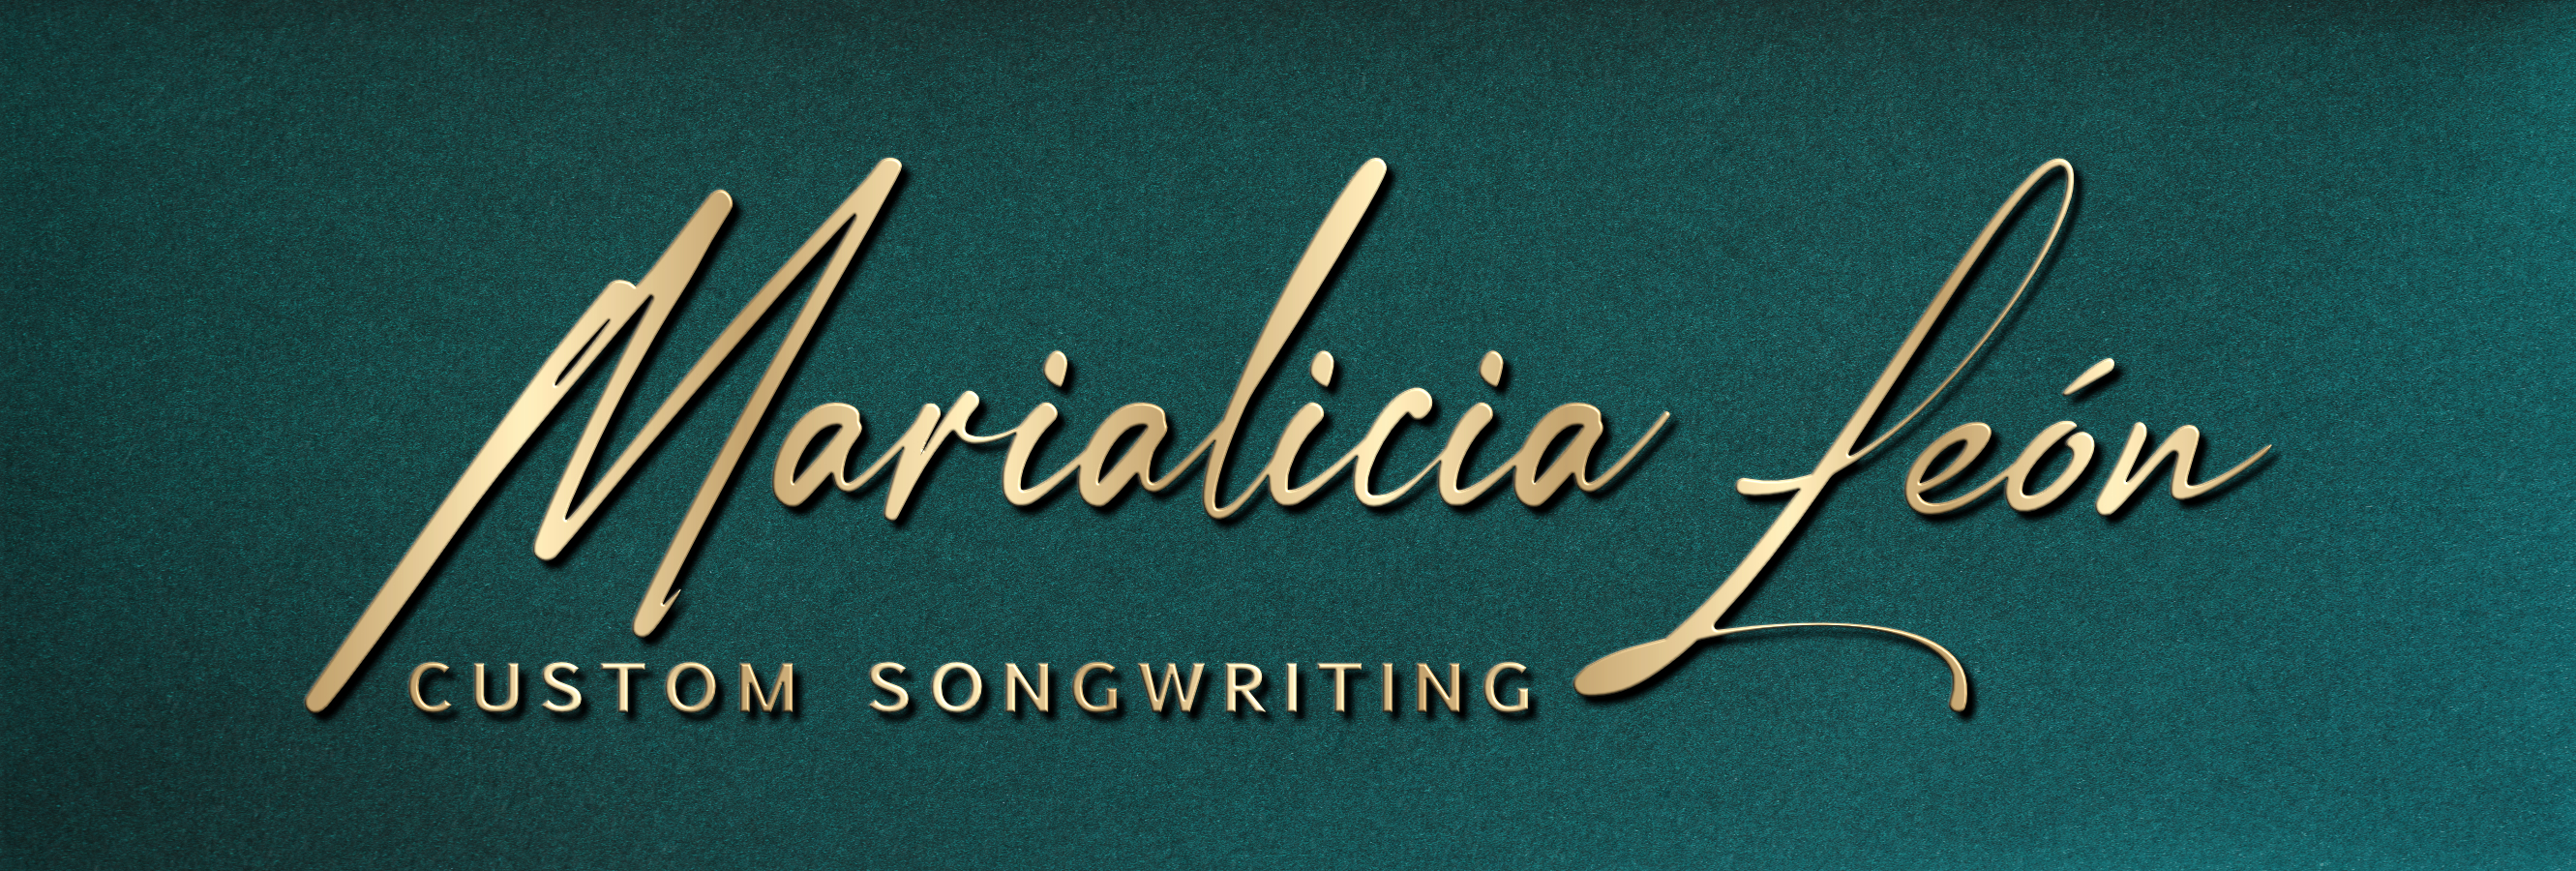 Marialicia León. Custom Songwriting Logo